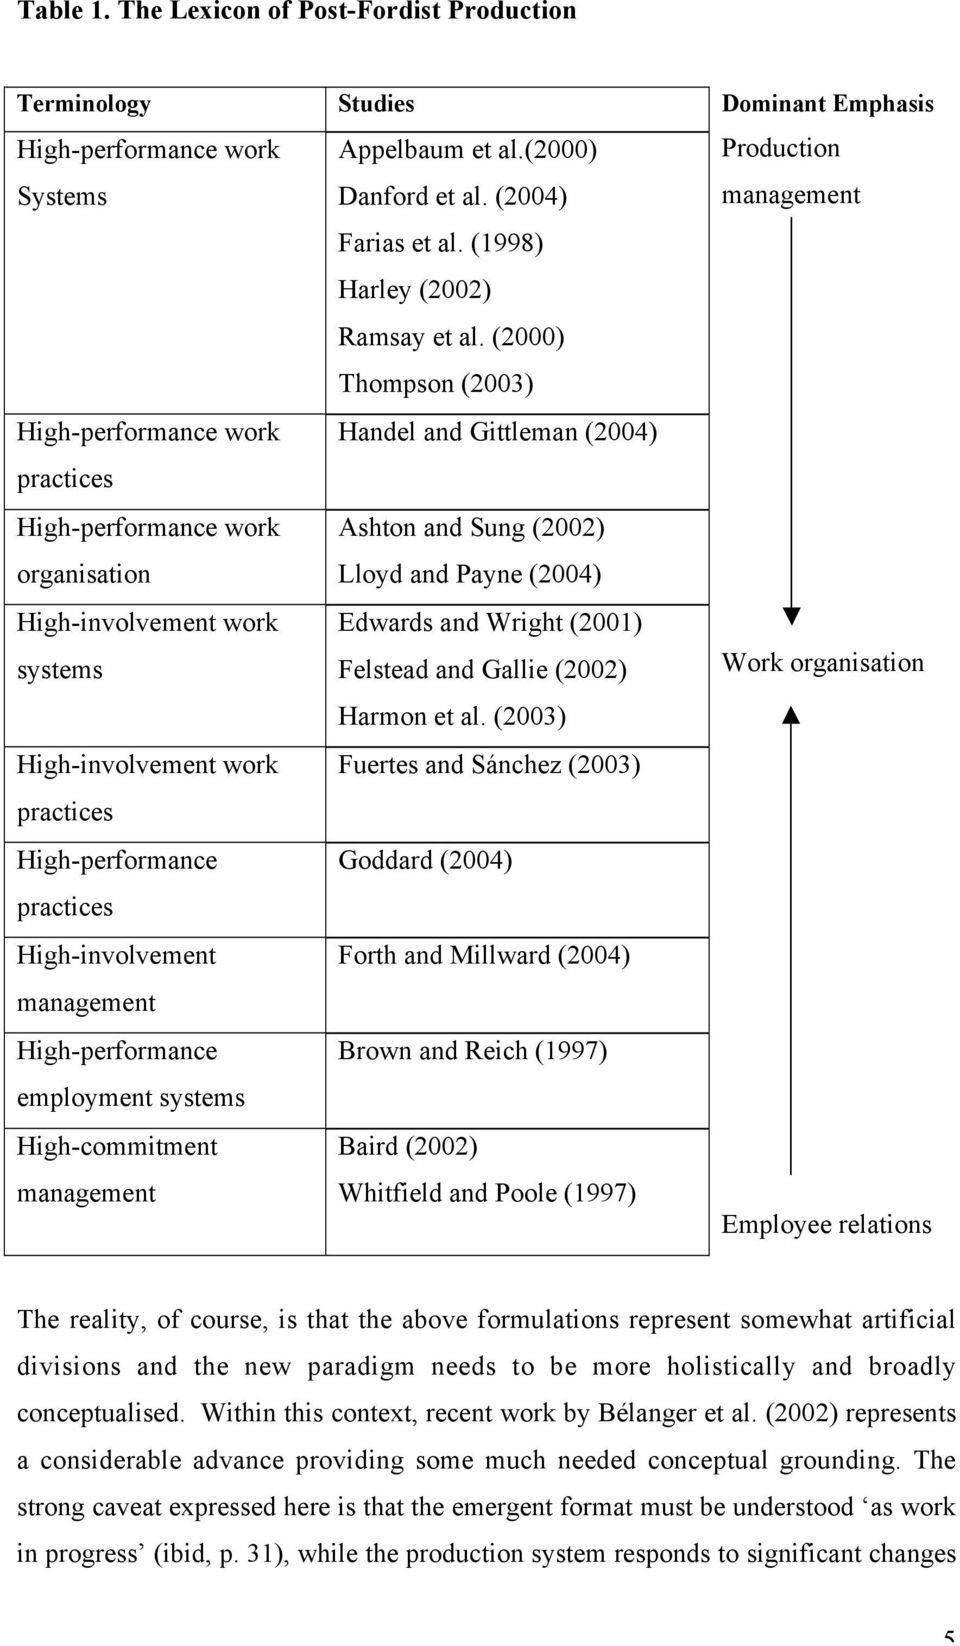 practices High-performance practices High-involvement management High-performance employment systems High-commitment management Studies Appelbaum et al.(2000) Danford et al. (2004) Farias et al.